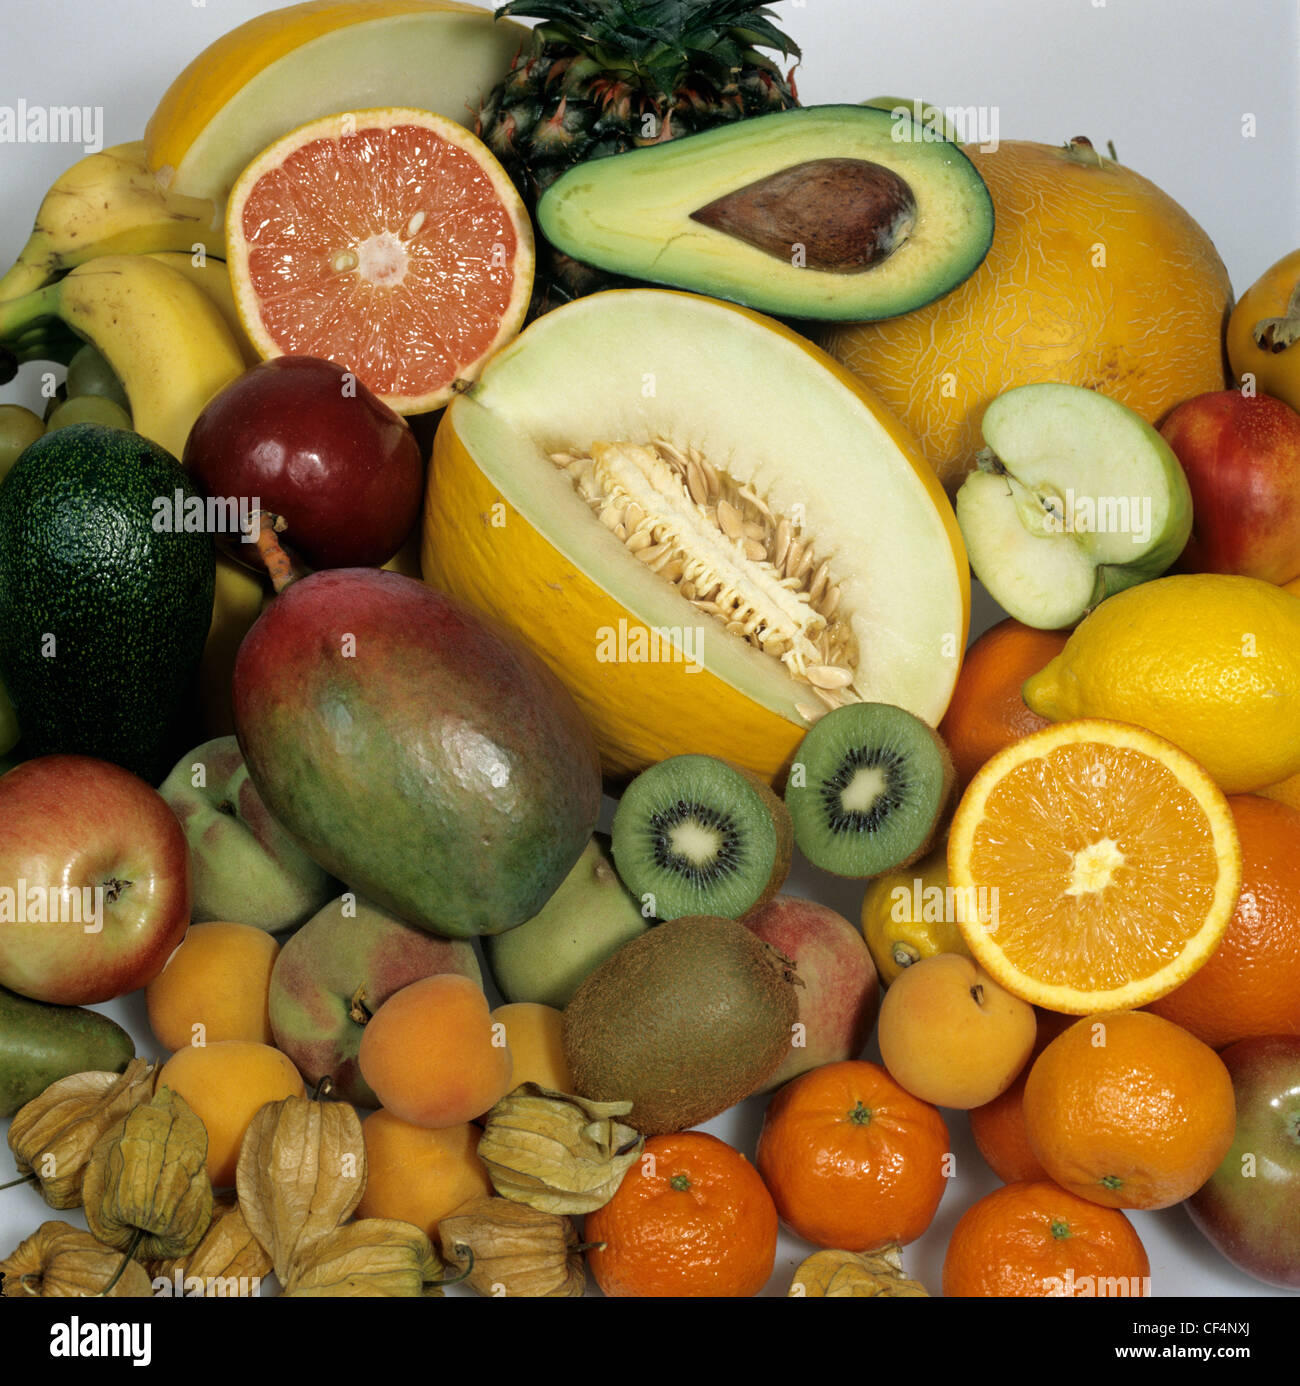 Tropical fruits bought in a supermarket Stock Photo